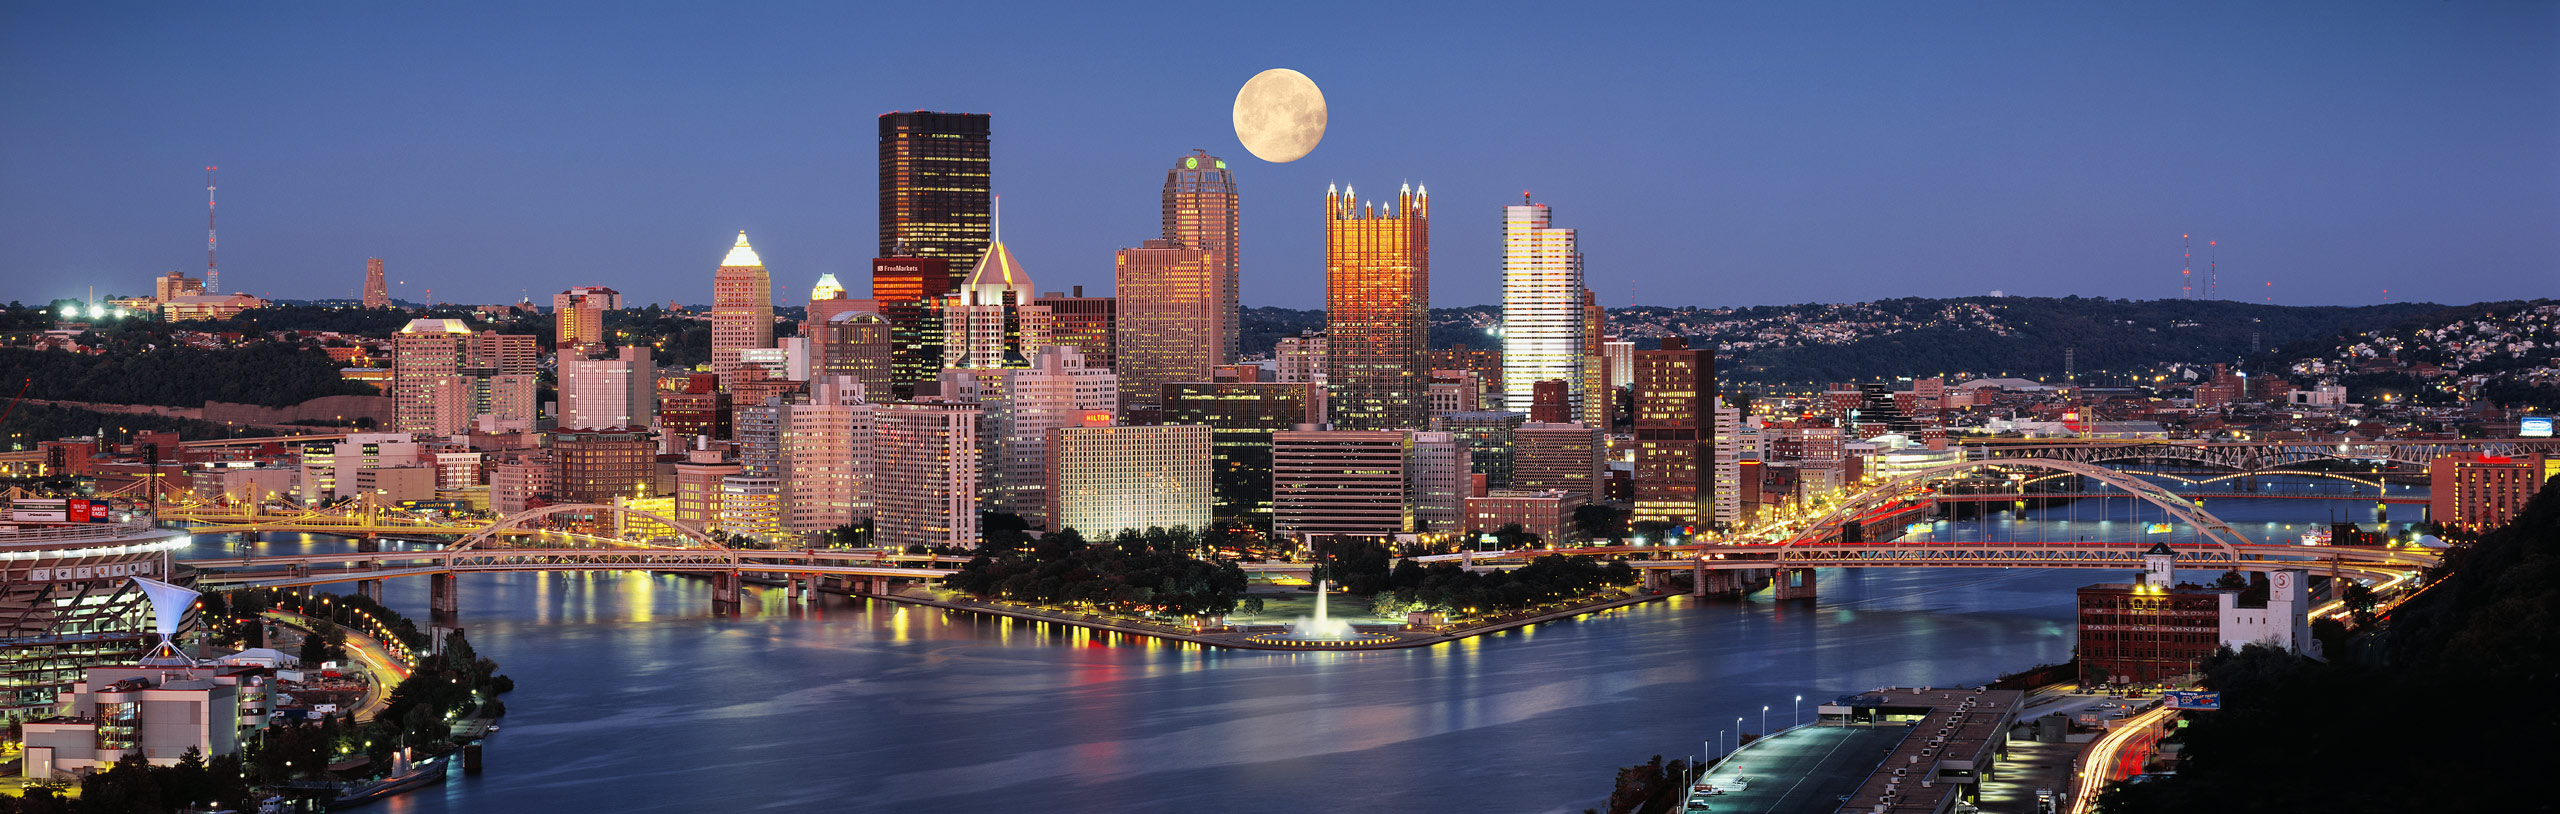 Pittsburgh, PA Dusk, Moon